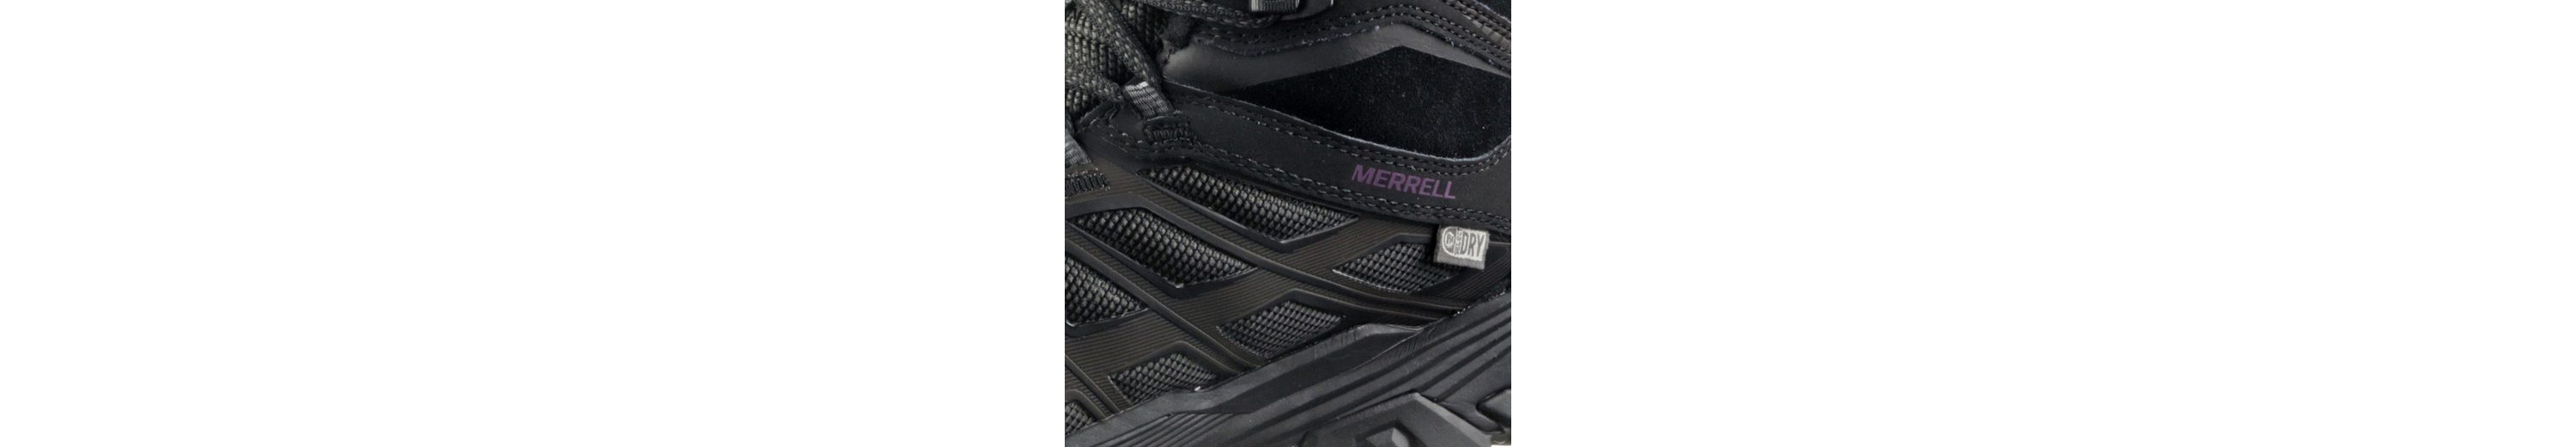 Merell Moab FST Ice + Thermo Winterboots 2018 Auslaß EefDvkFz1q